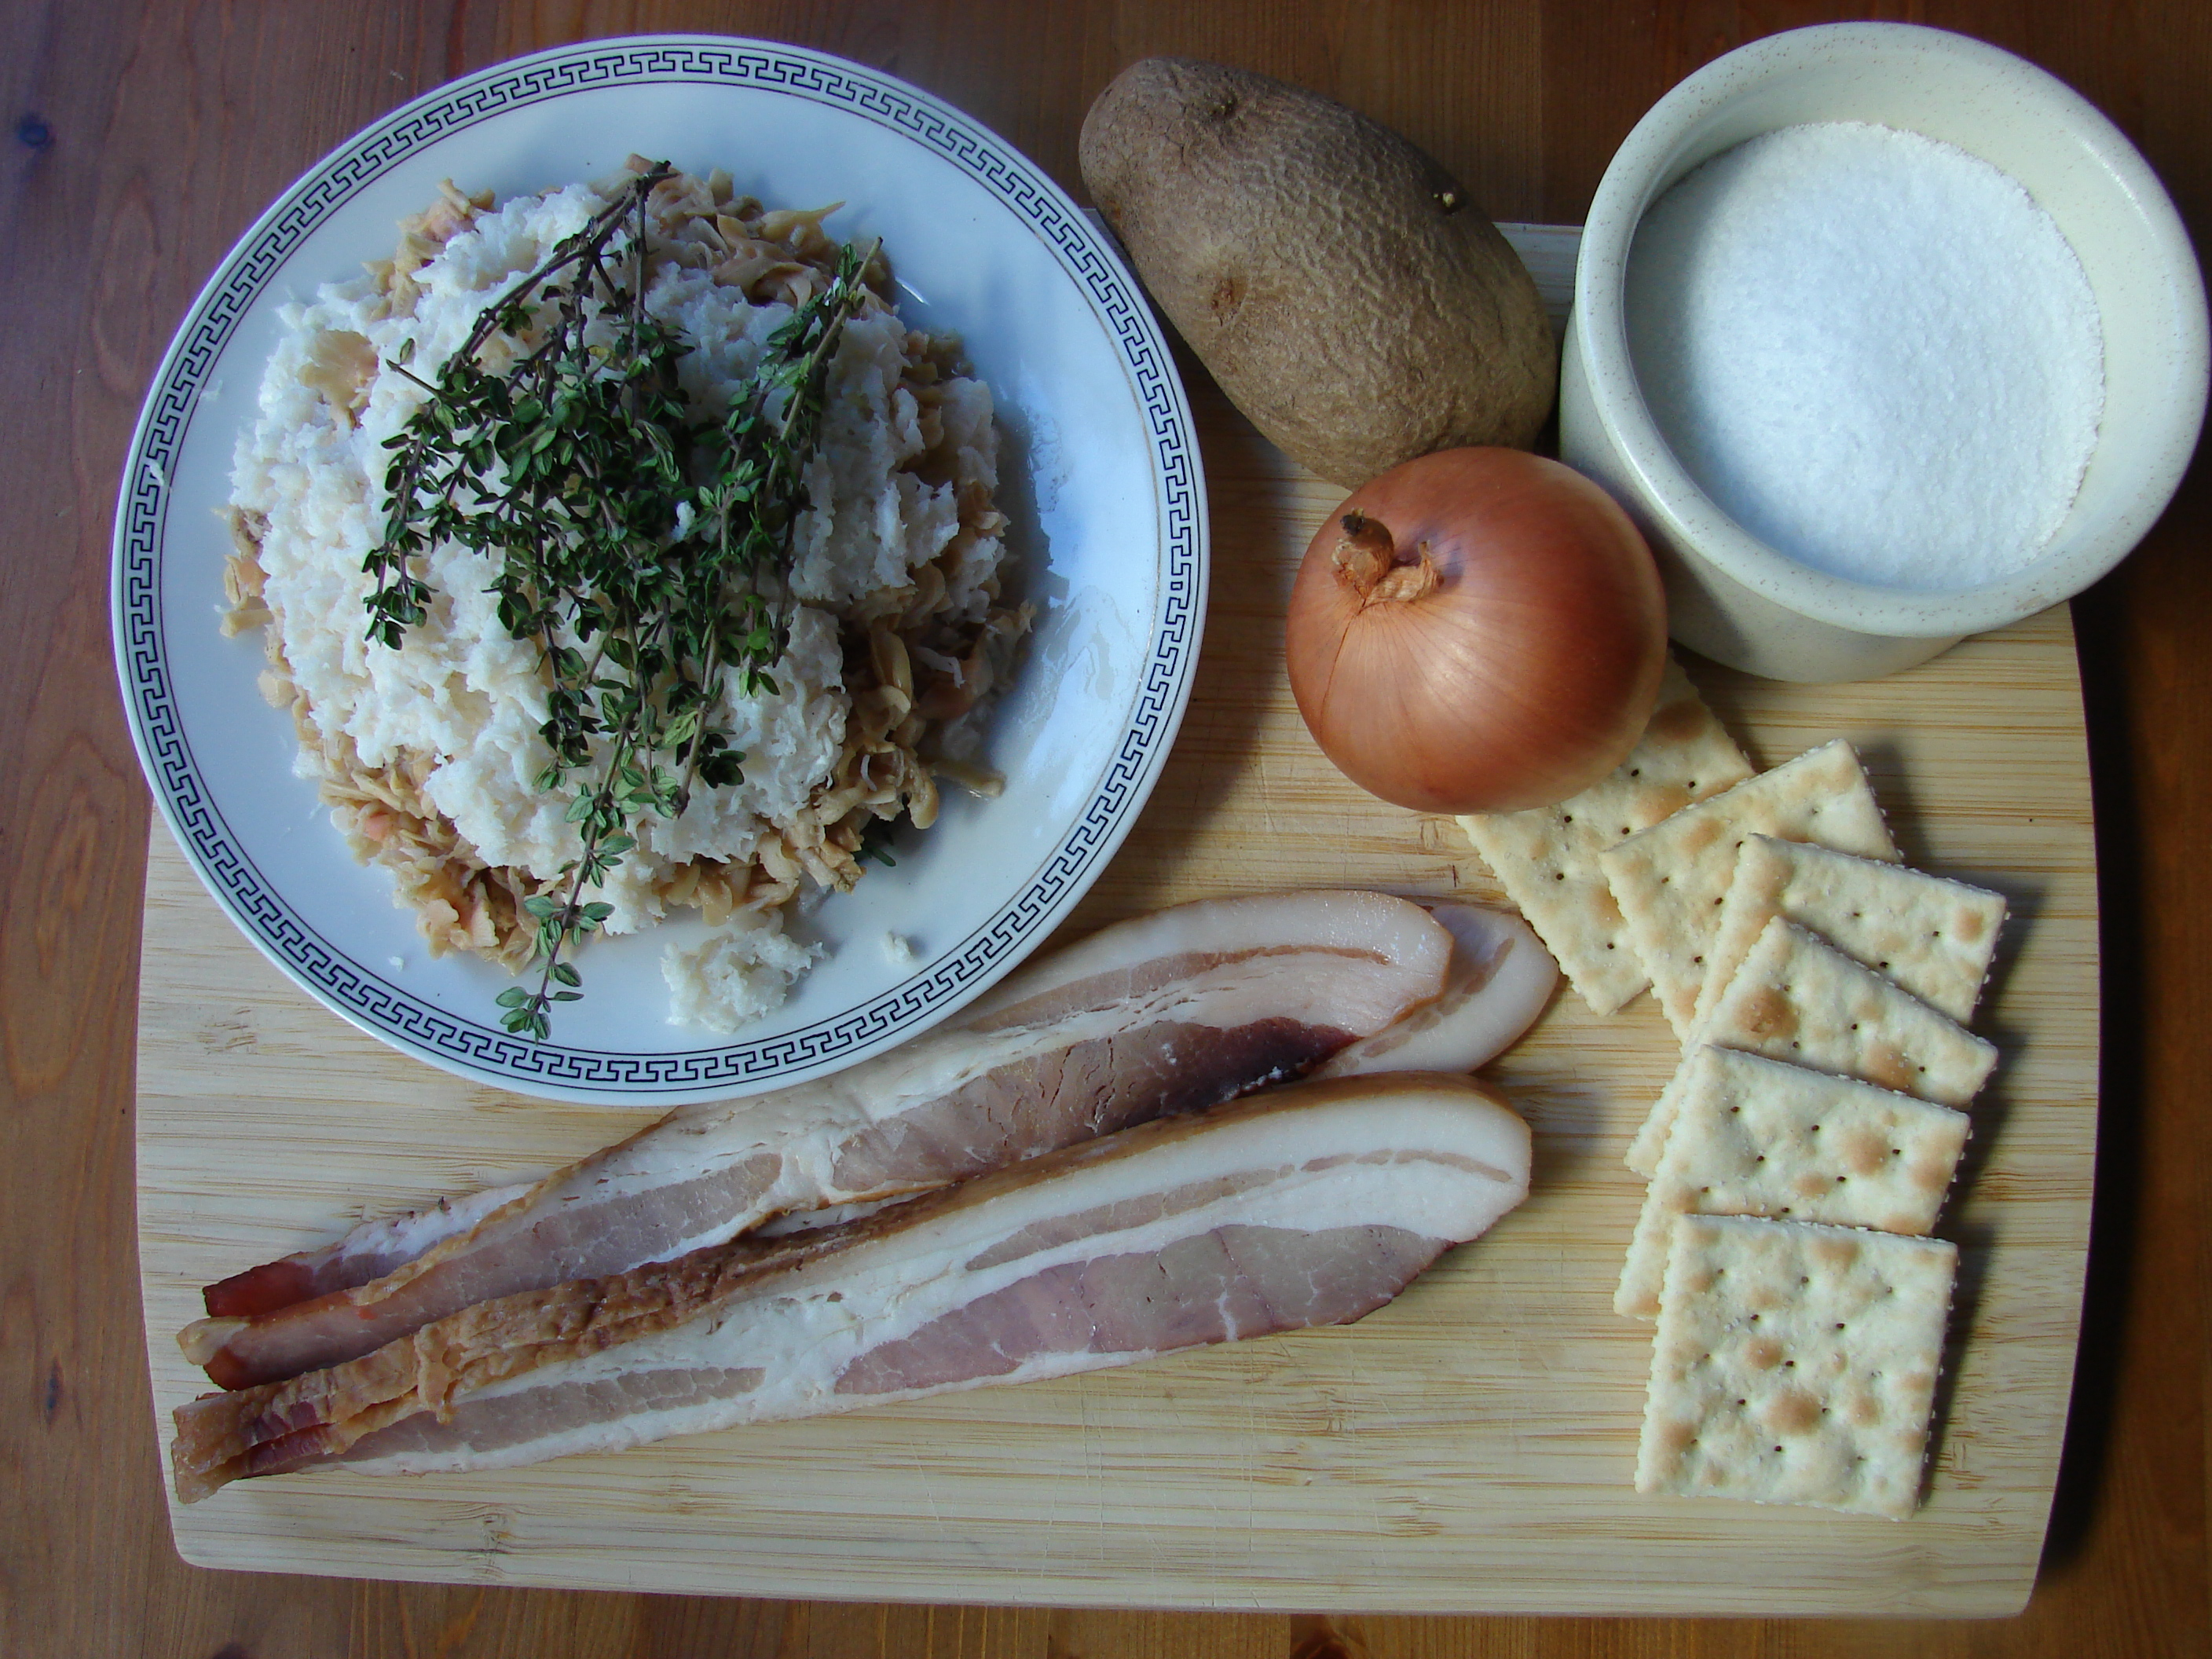 Fish Chowder Ingredients, Photo: Eric Colleary